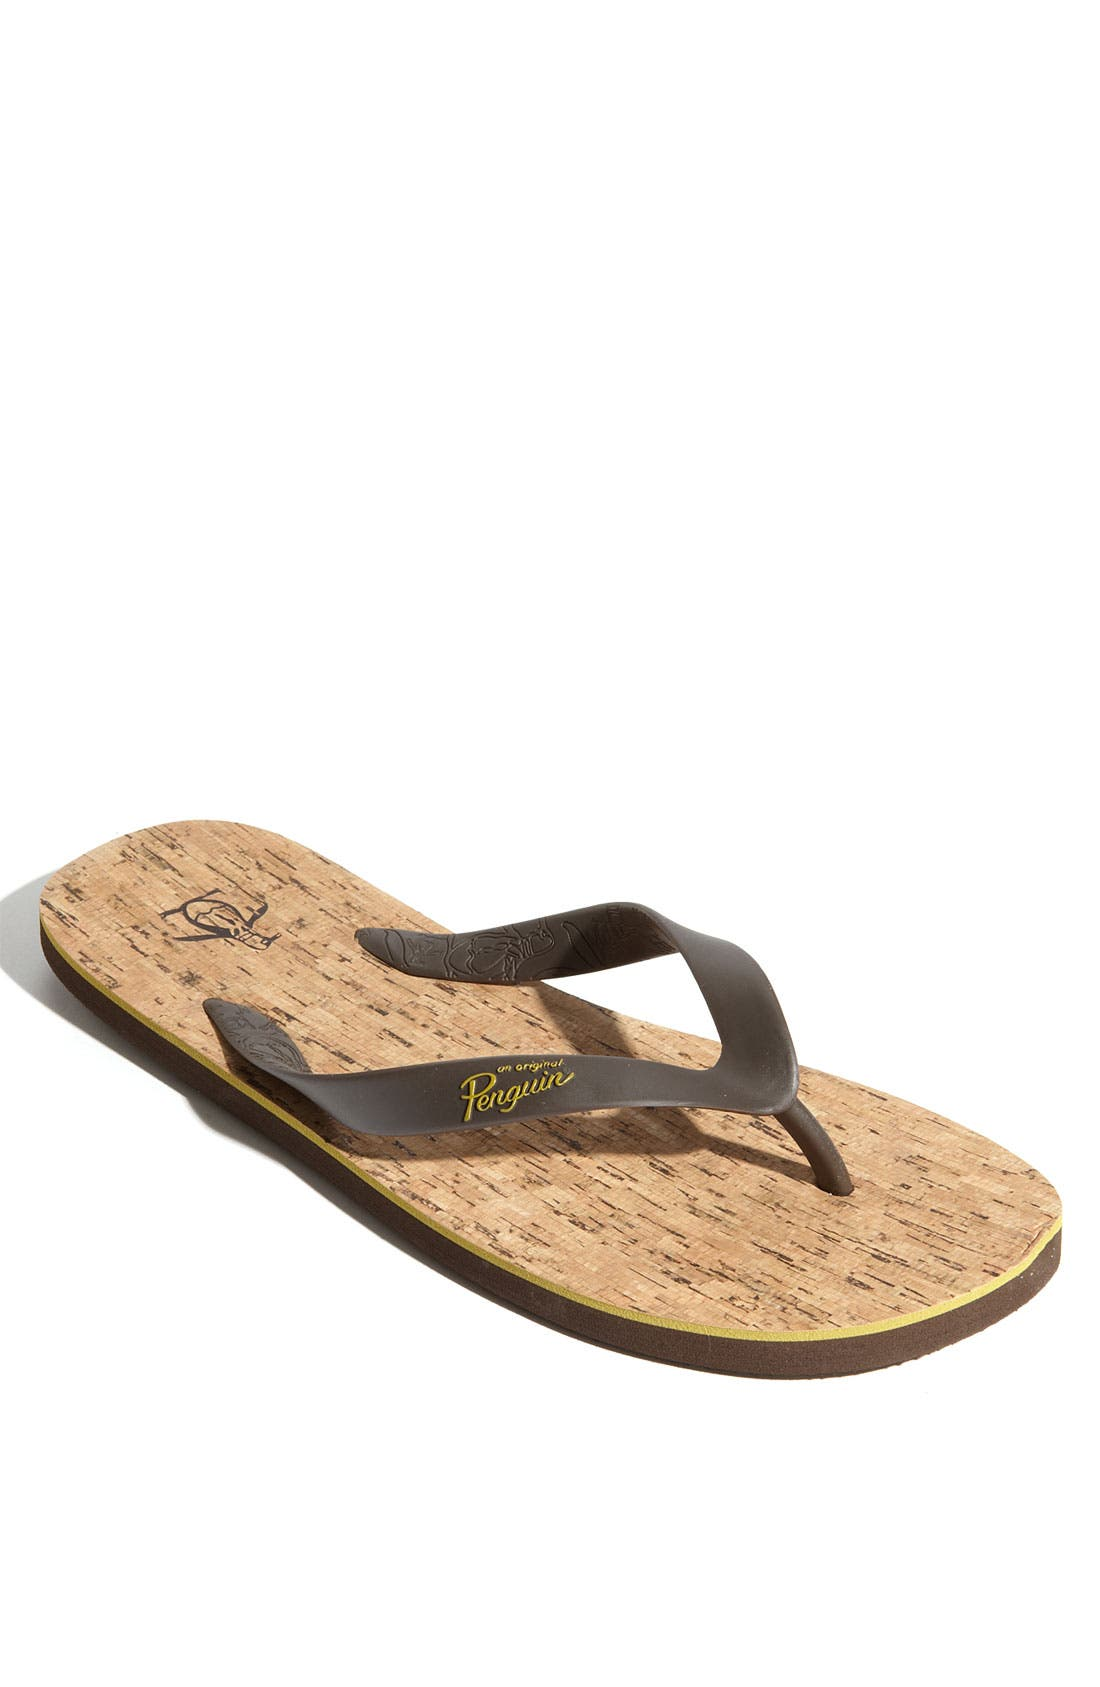 Alternate Image 1 Selected - Original Penguin 'Cork' Flip Flop